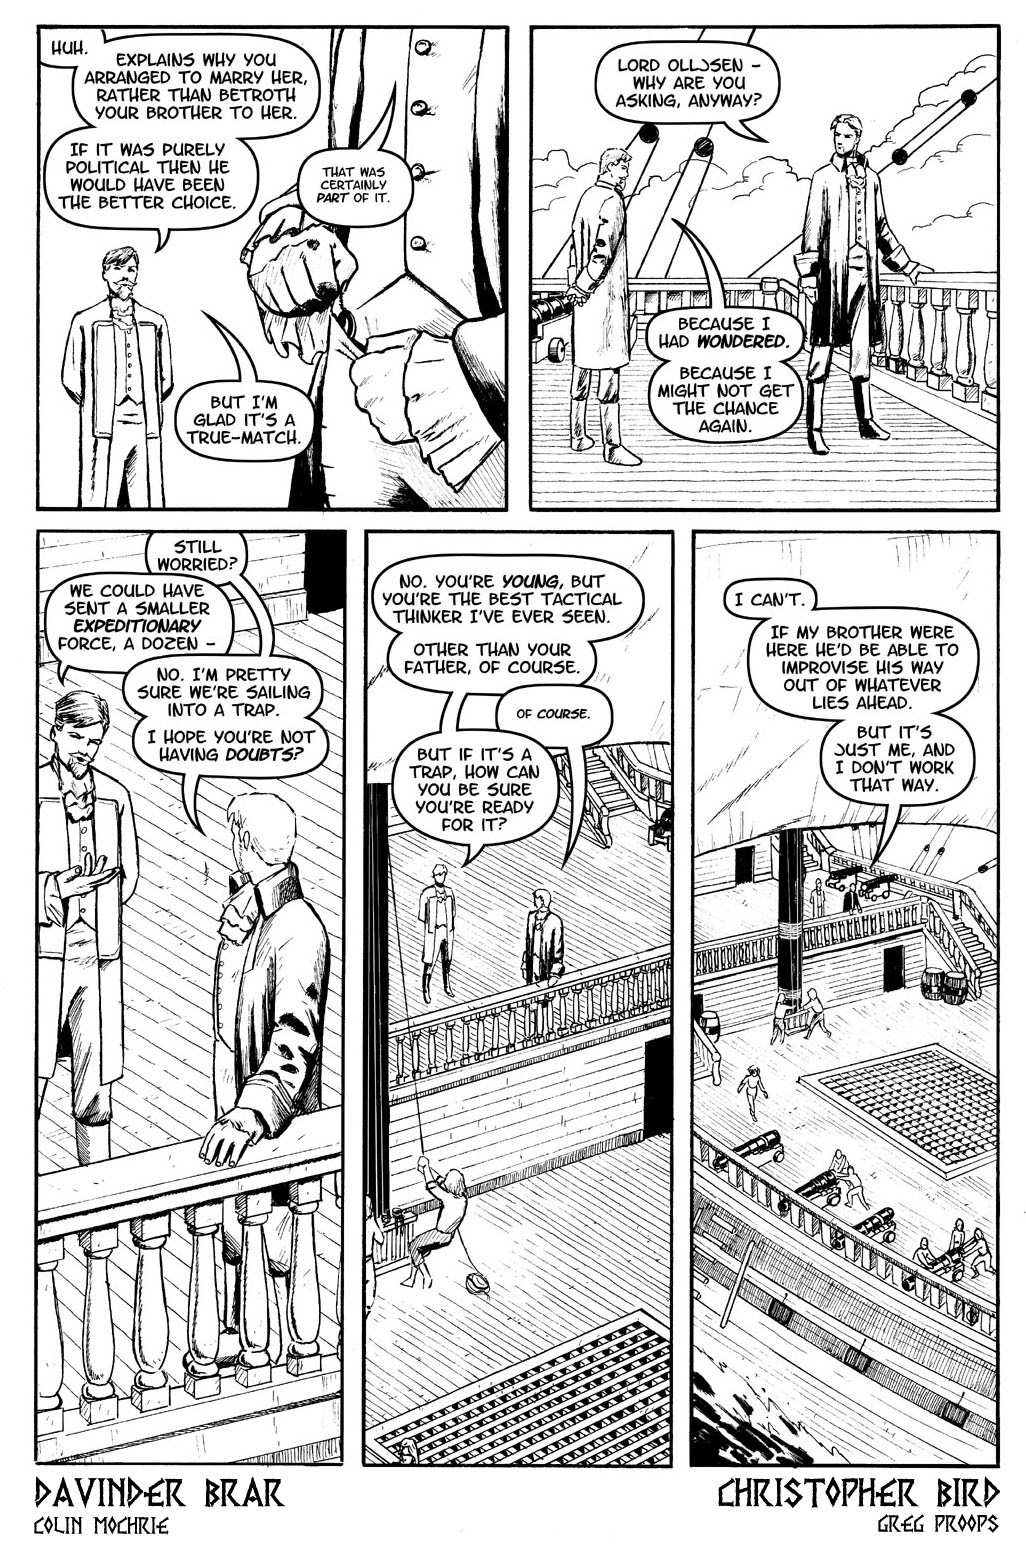 Book 5, page 2